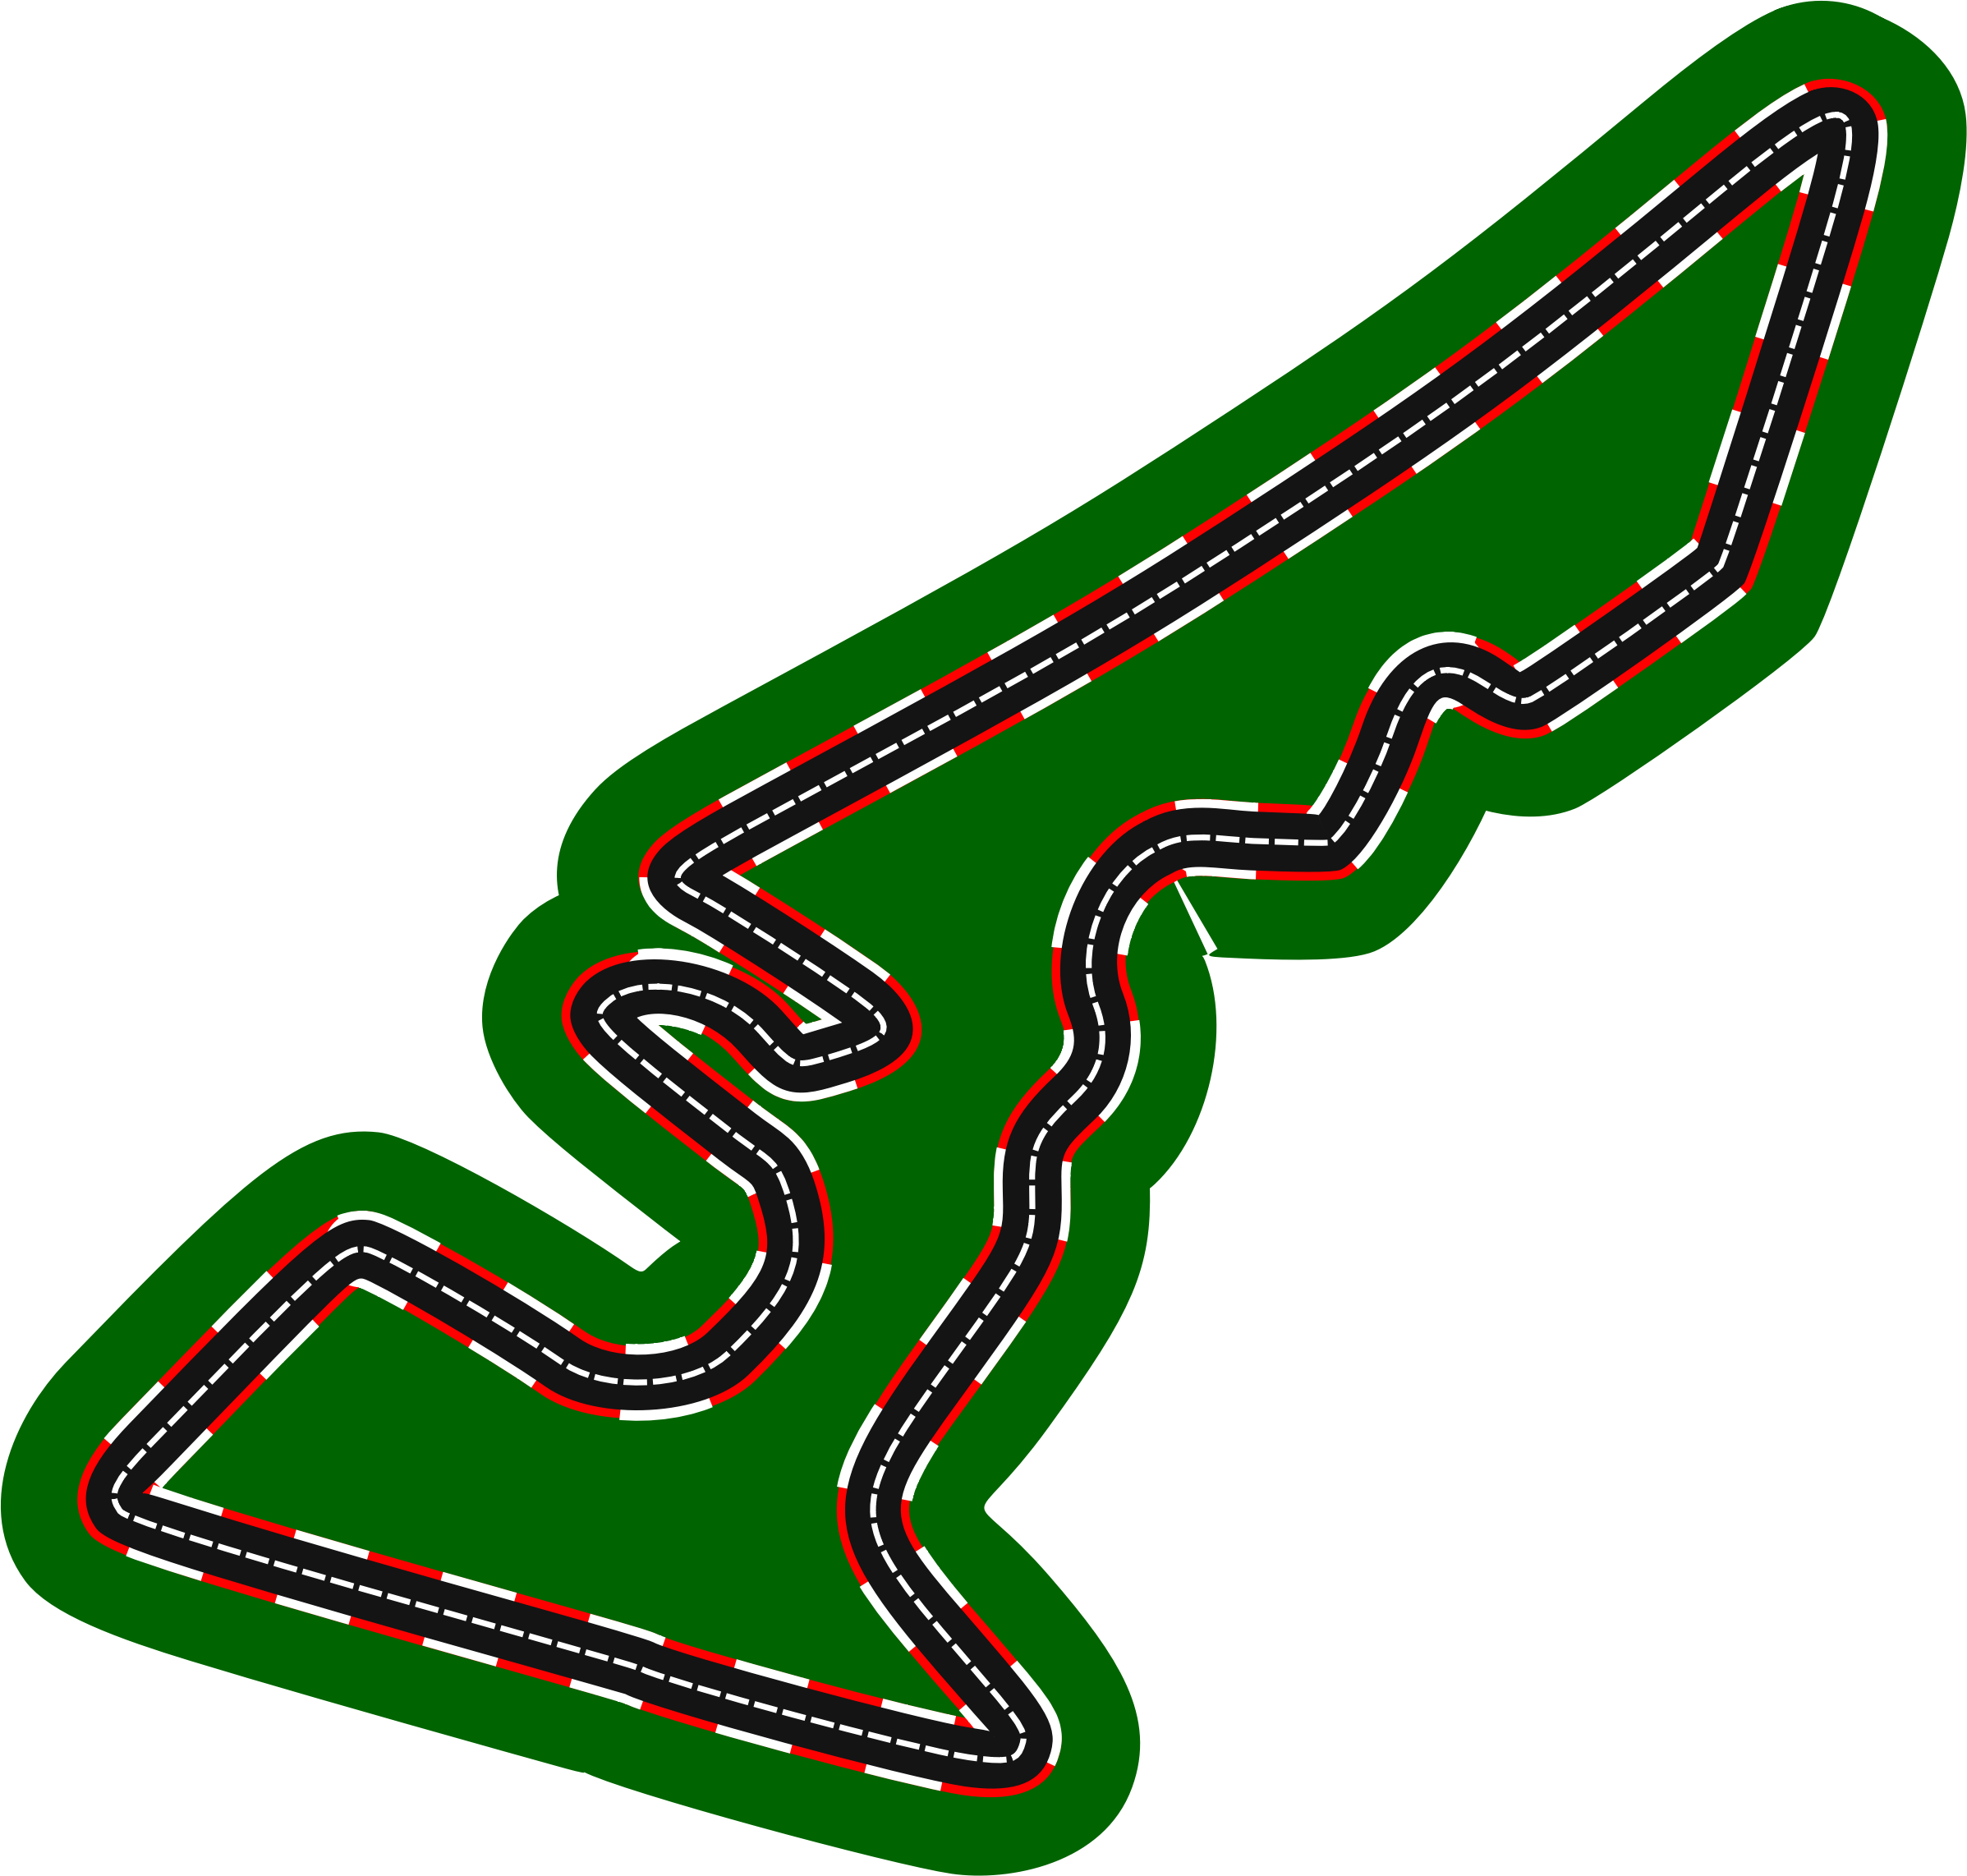 F1 circuits 2014-2018 - Circuit of the Americas (version 2) by Firkin